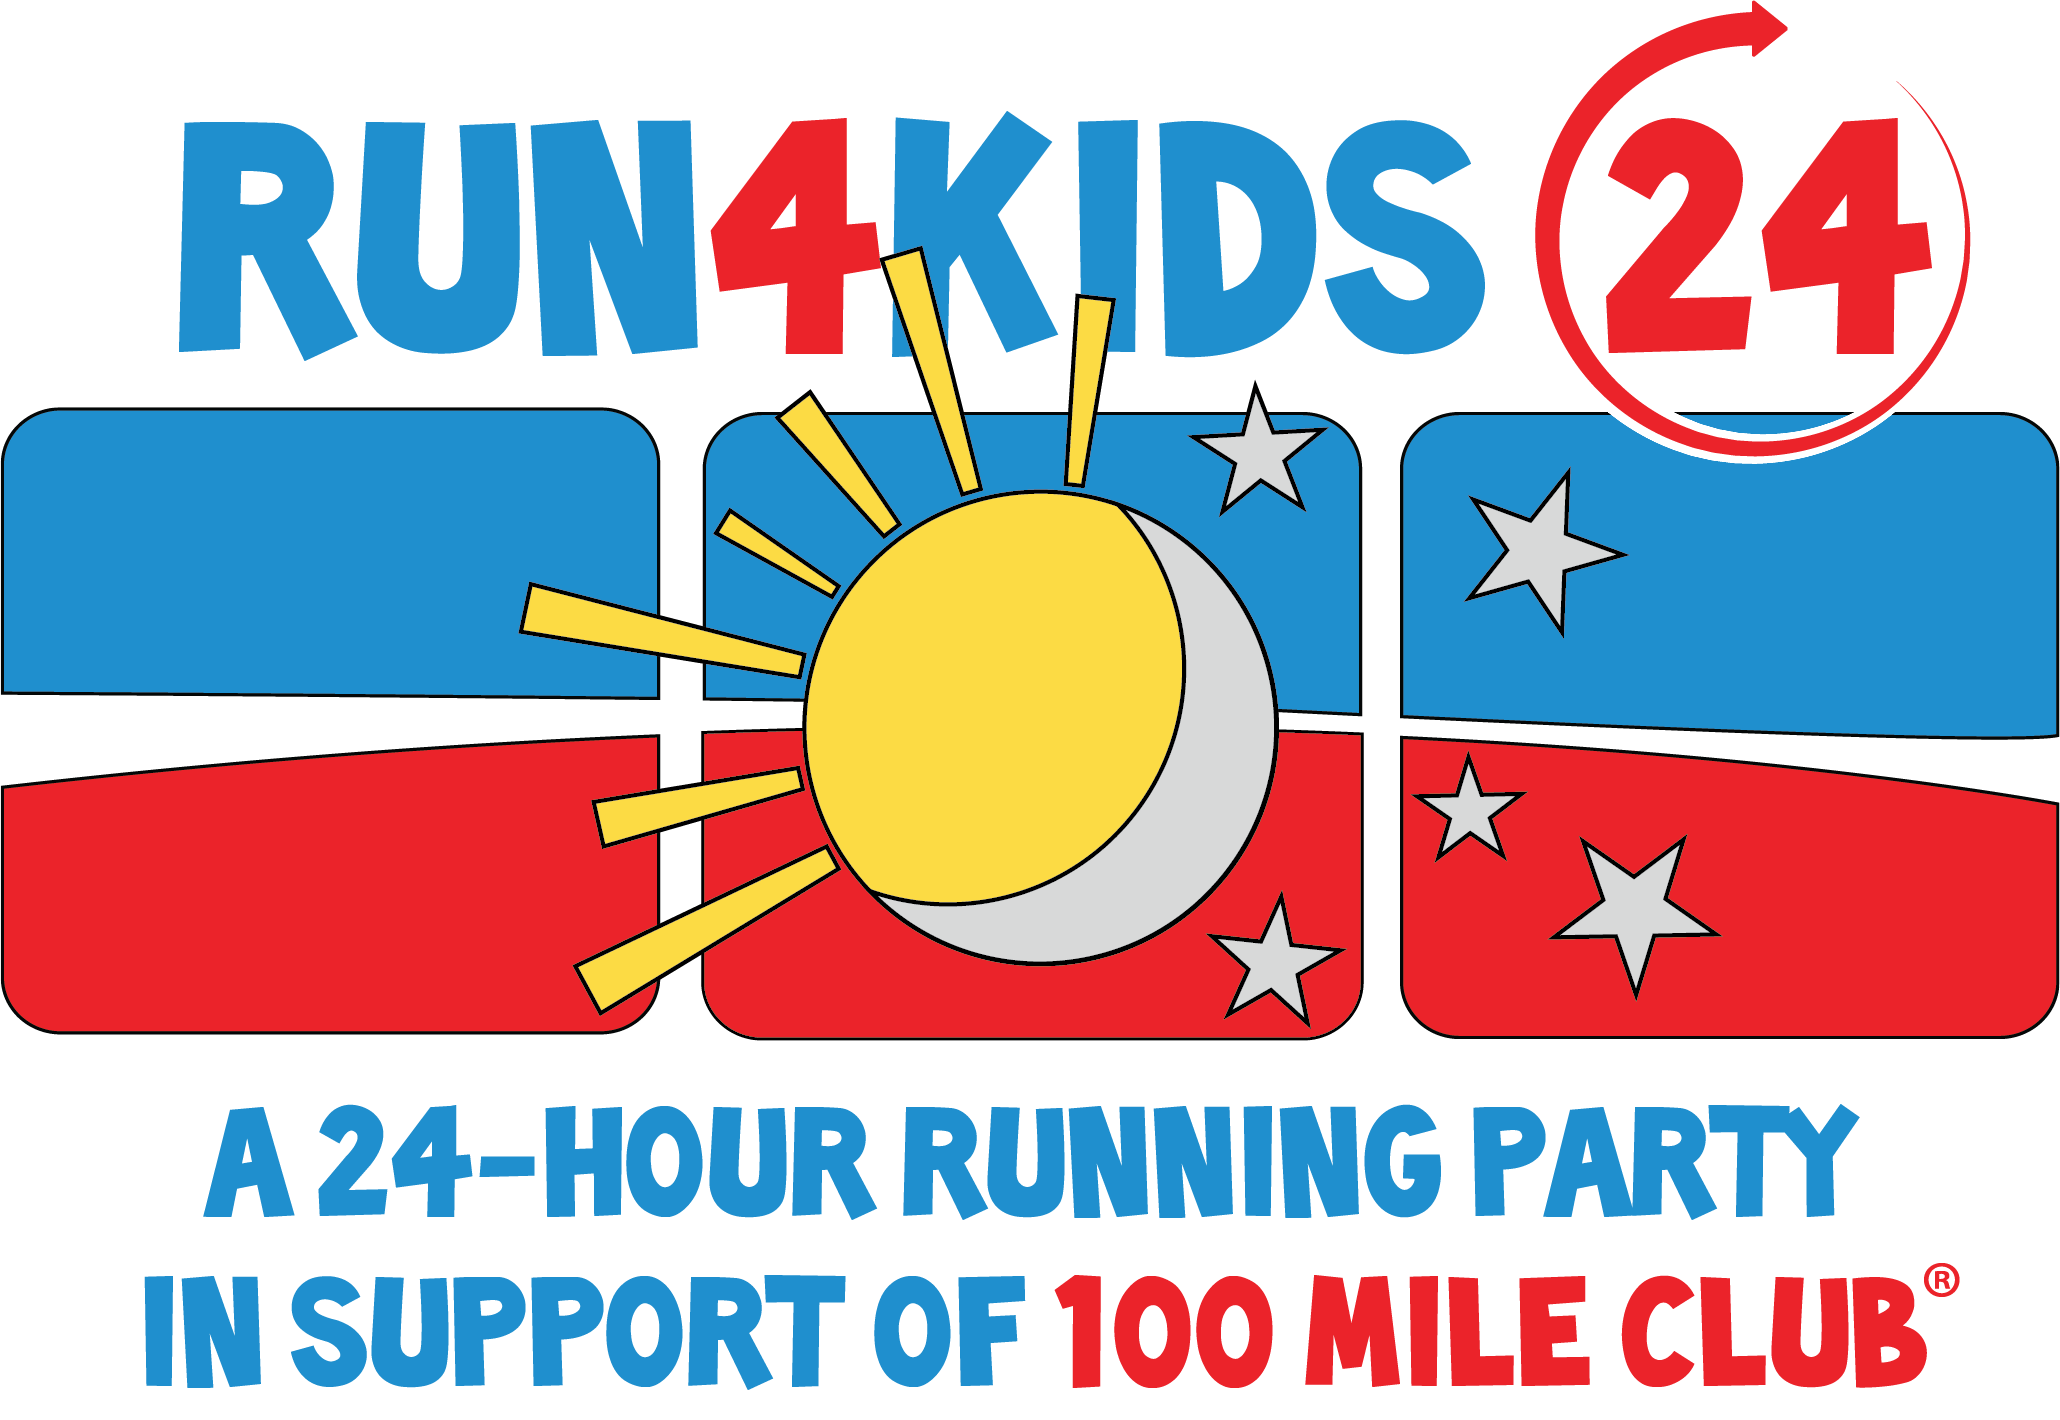 run4kids-24-ultra-logo